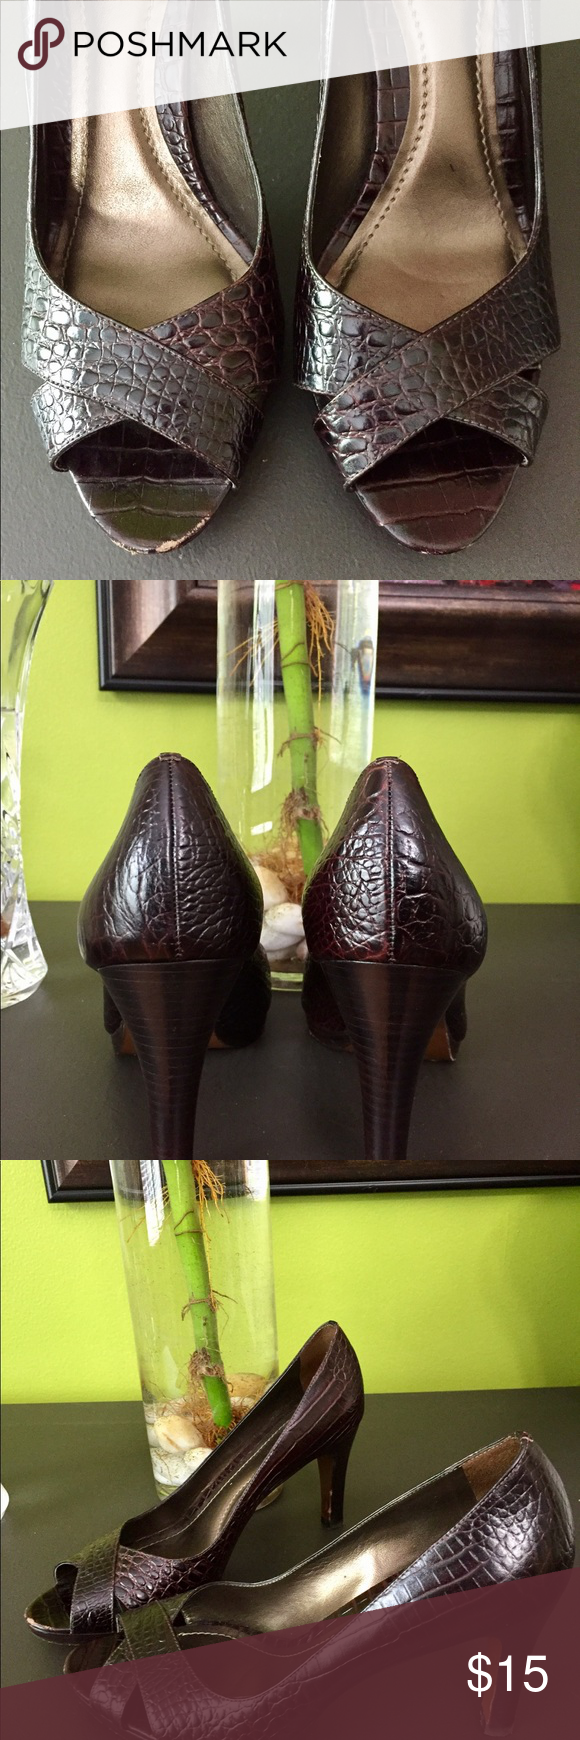 Ann Taylor High Heels 🌻🌻🌻 Genuine brown leather, super cute and comfortable!  In good condition.  Pre-owned, has a few scuffs as shown in pictures. Ann Taylor Shoes Heels